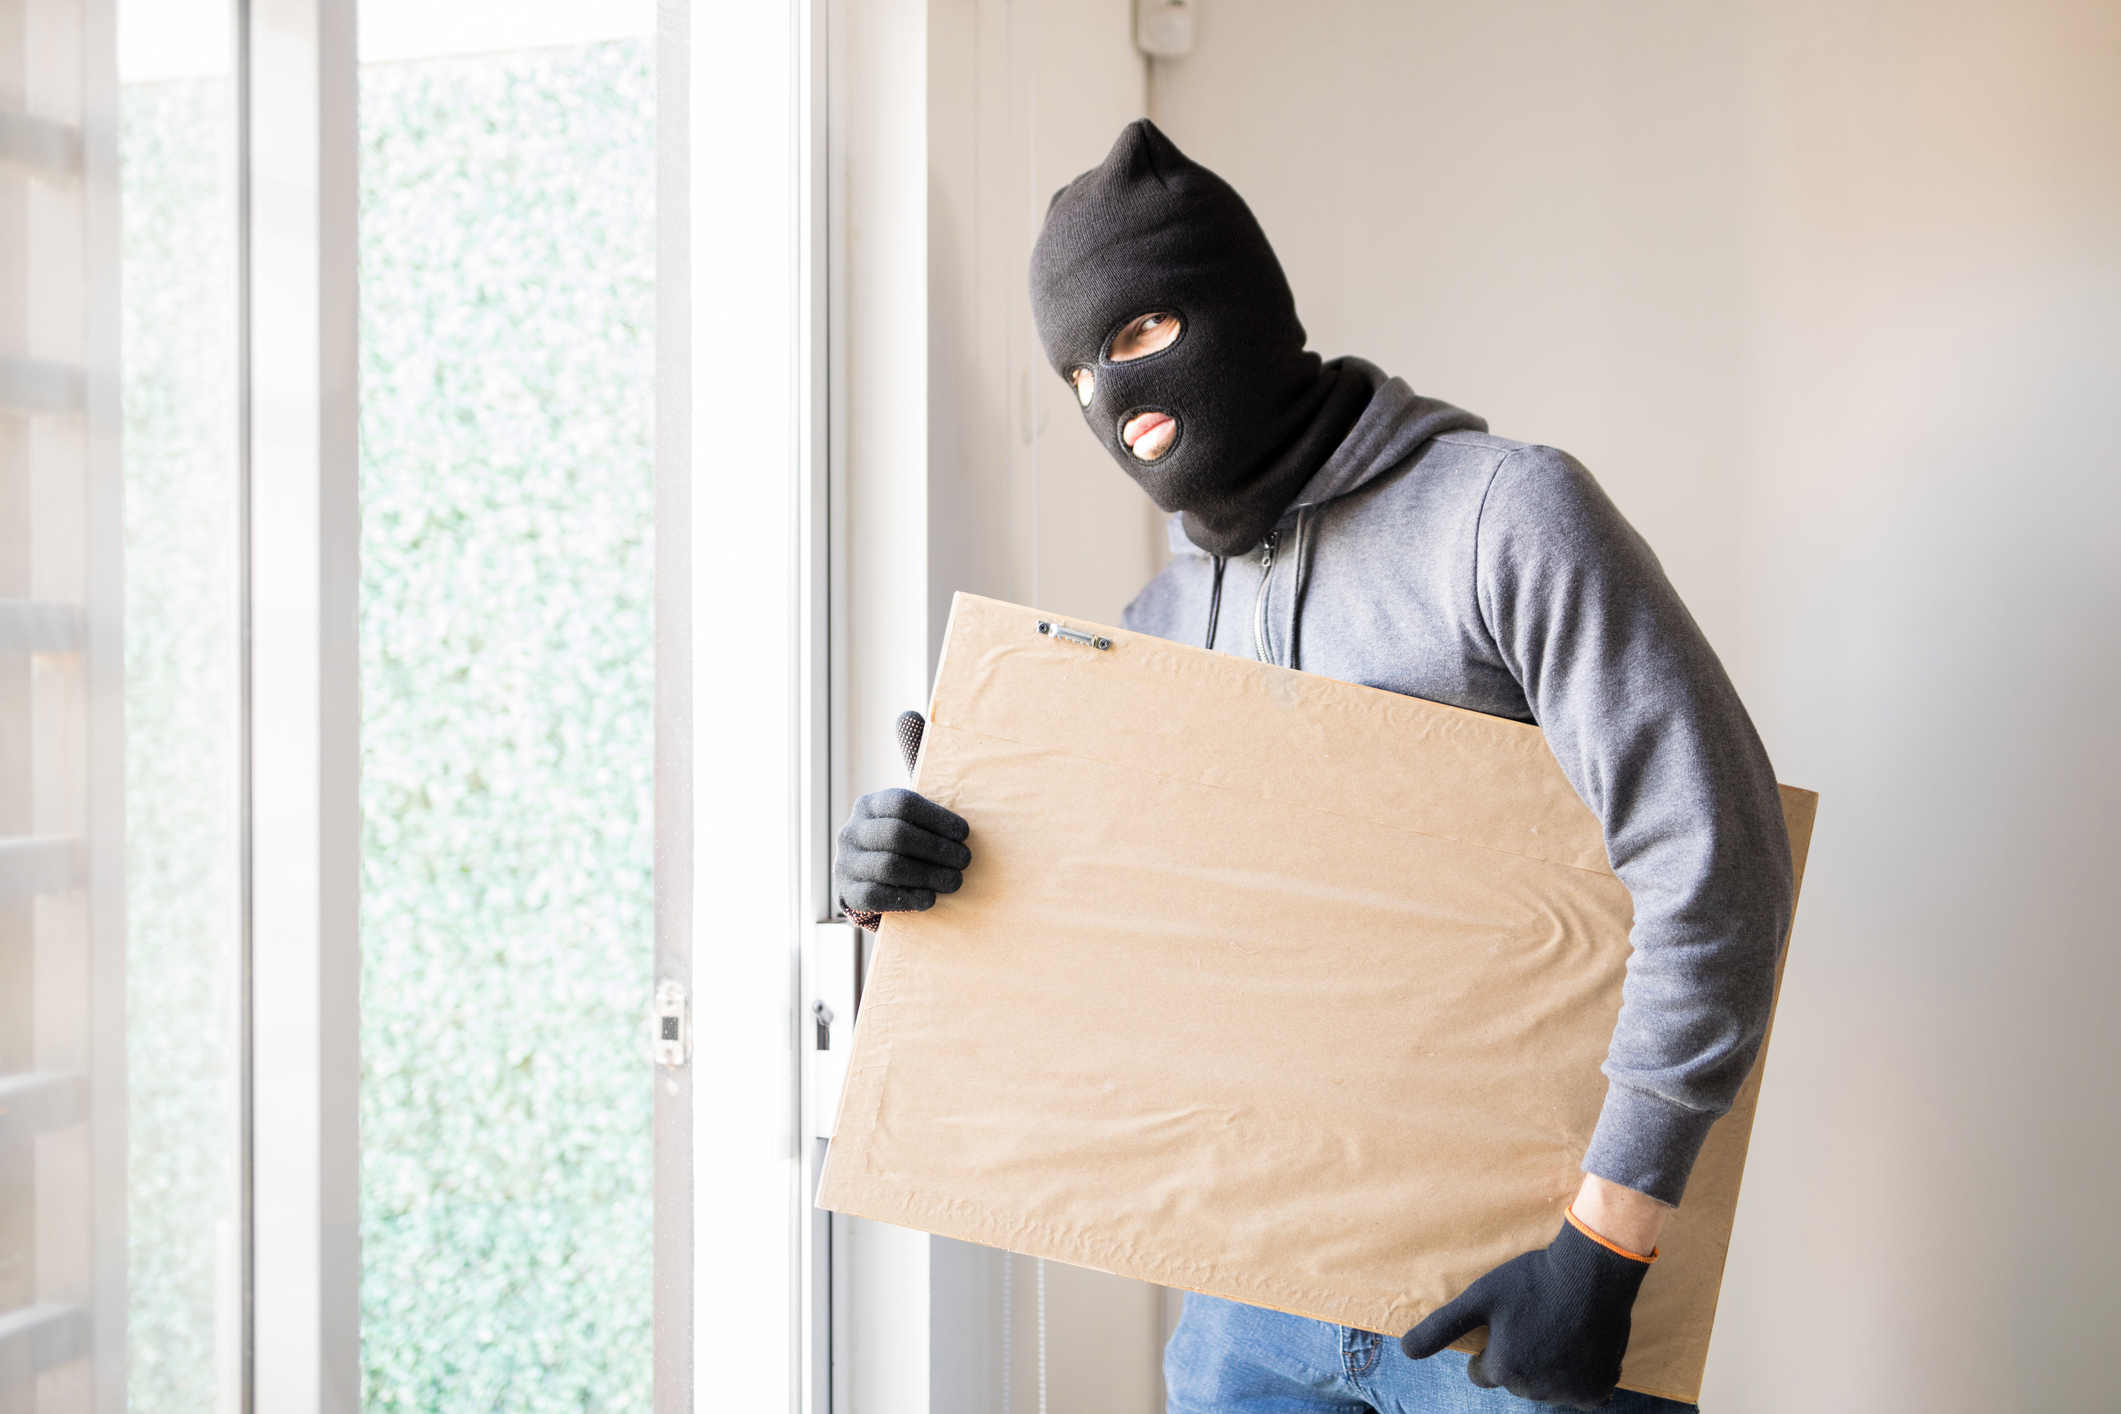 Male criminal stealing some art.